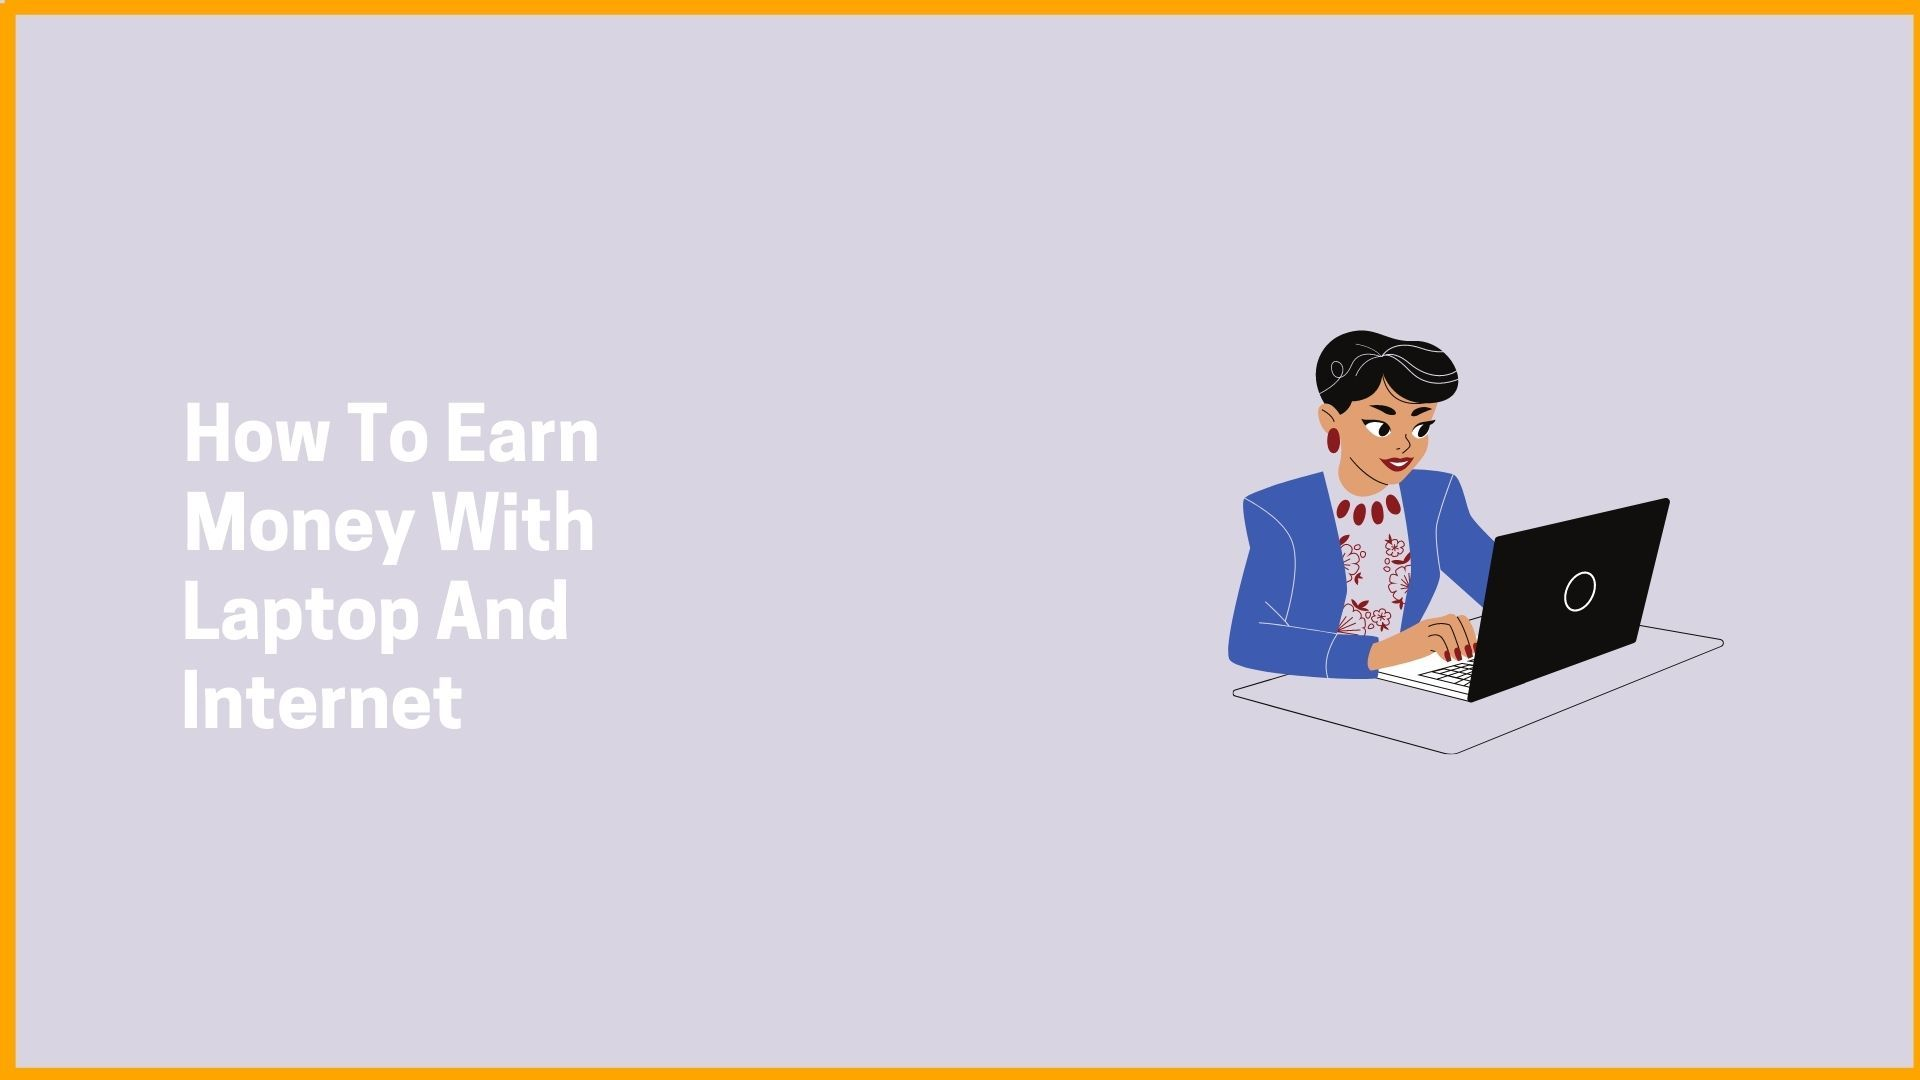 How To Earn Money With Laptop And Internet